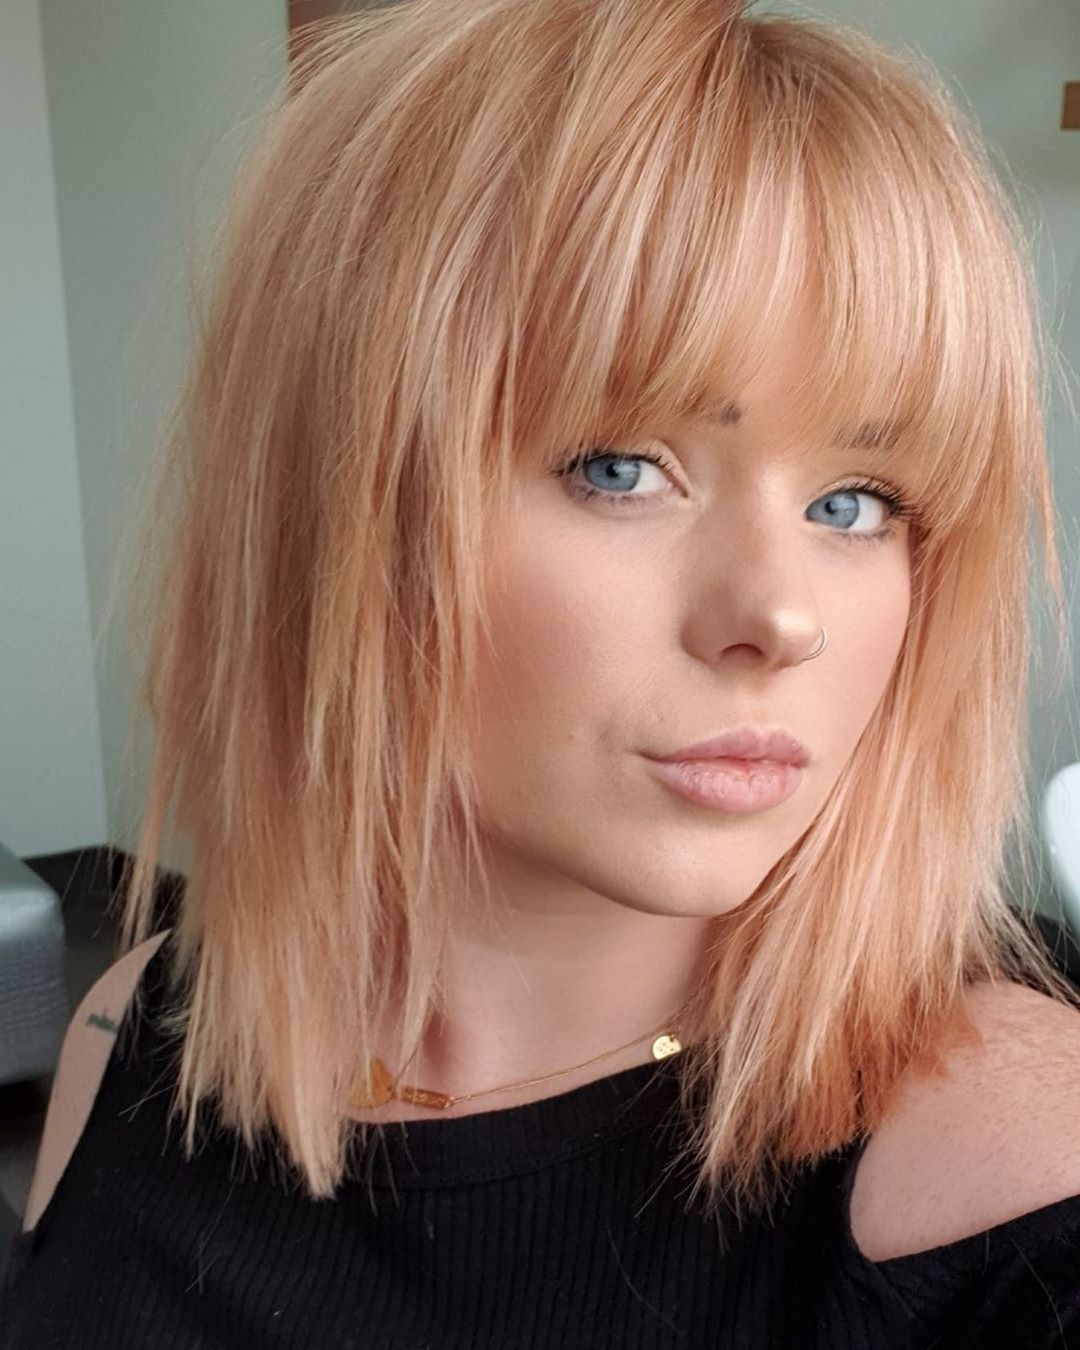 Kalohairbeauty On Instagram New Fringe And 70s Shag For Rubyjohnston Kalohair In 2020 Hair Styles Medium Hair Styles Fringe Hairstyles